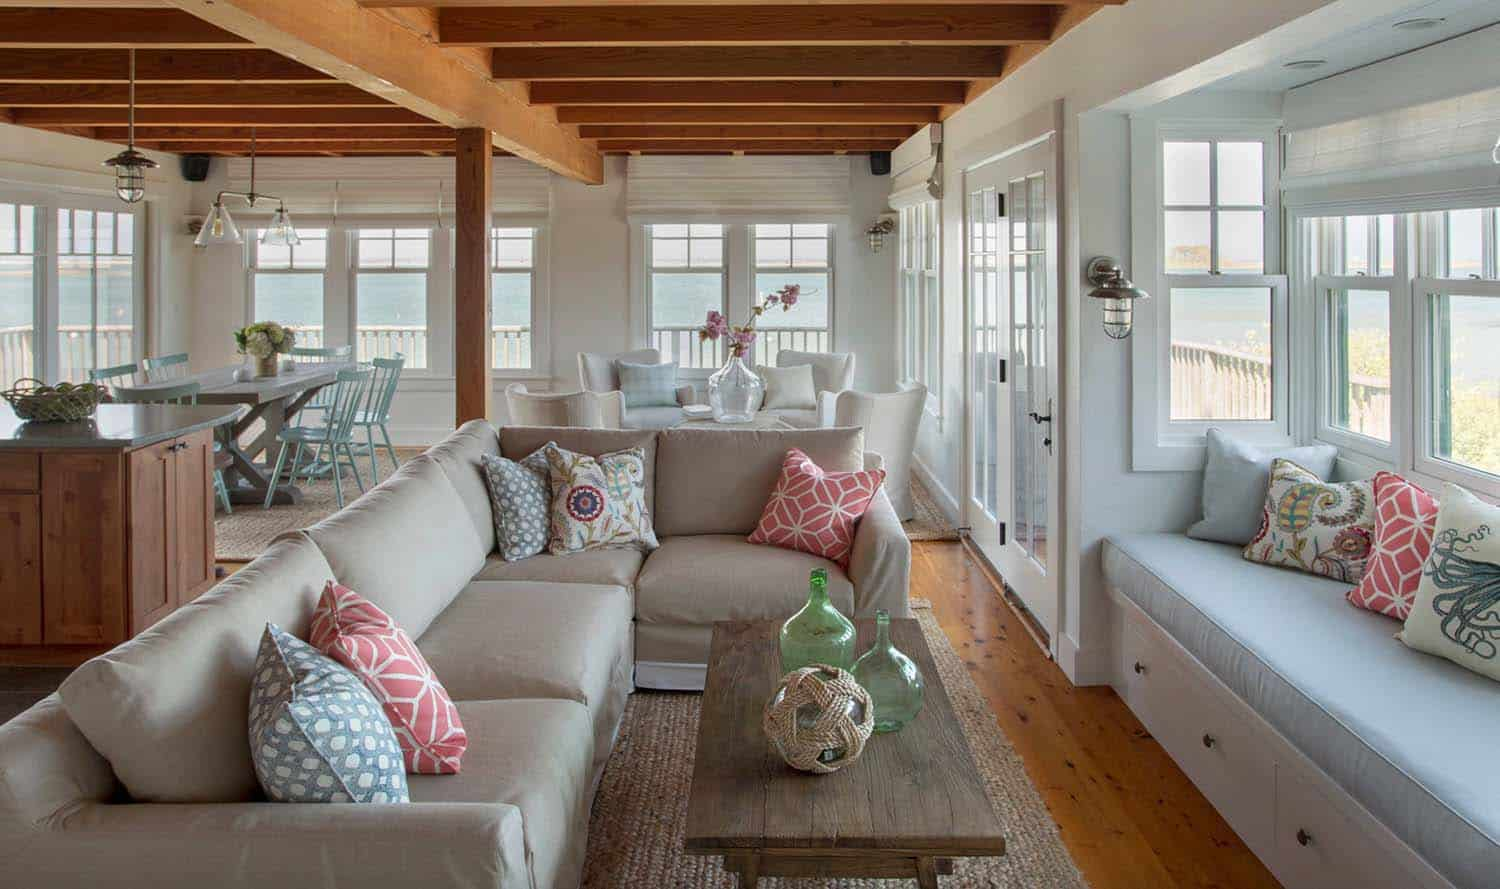 Surprising 33 Amazing Built In Window Seats Capturing Mesmerizing Ocean Unemploymentrelief Wooden Chair Designs For Living Room Unemploymentrelieforg